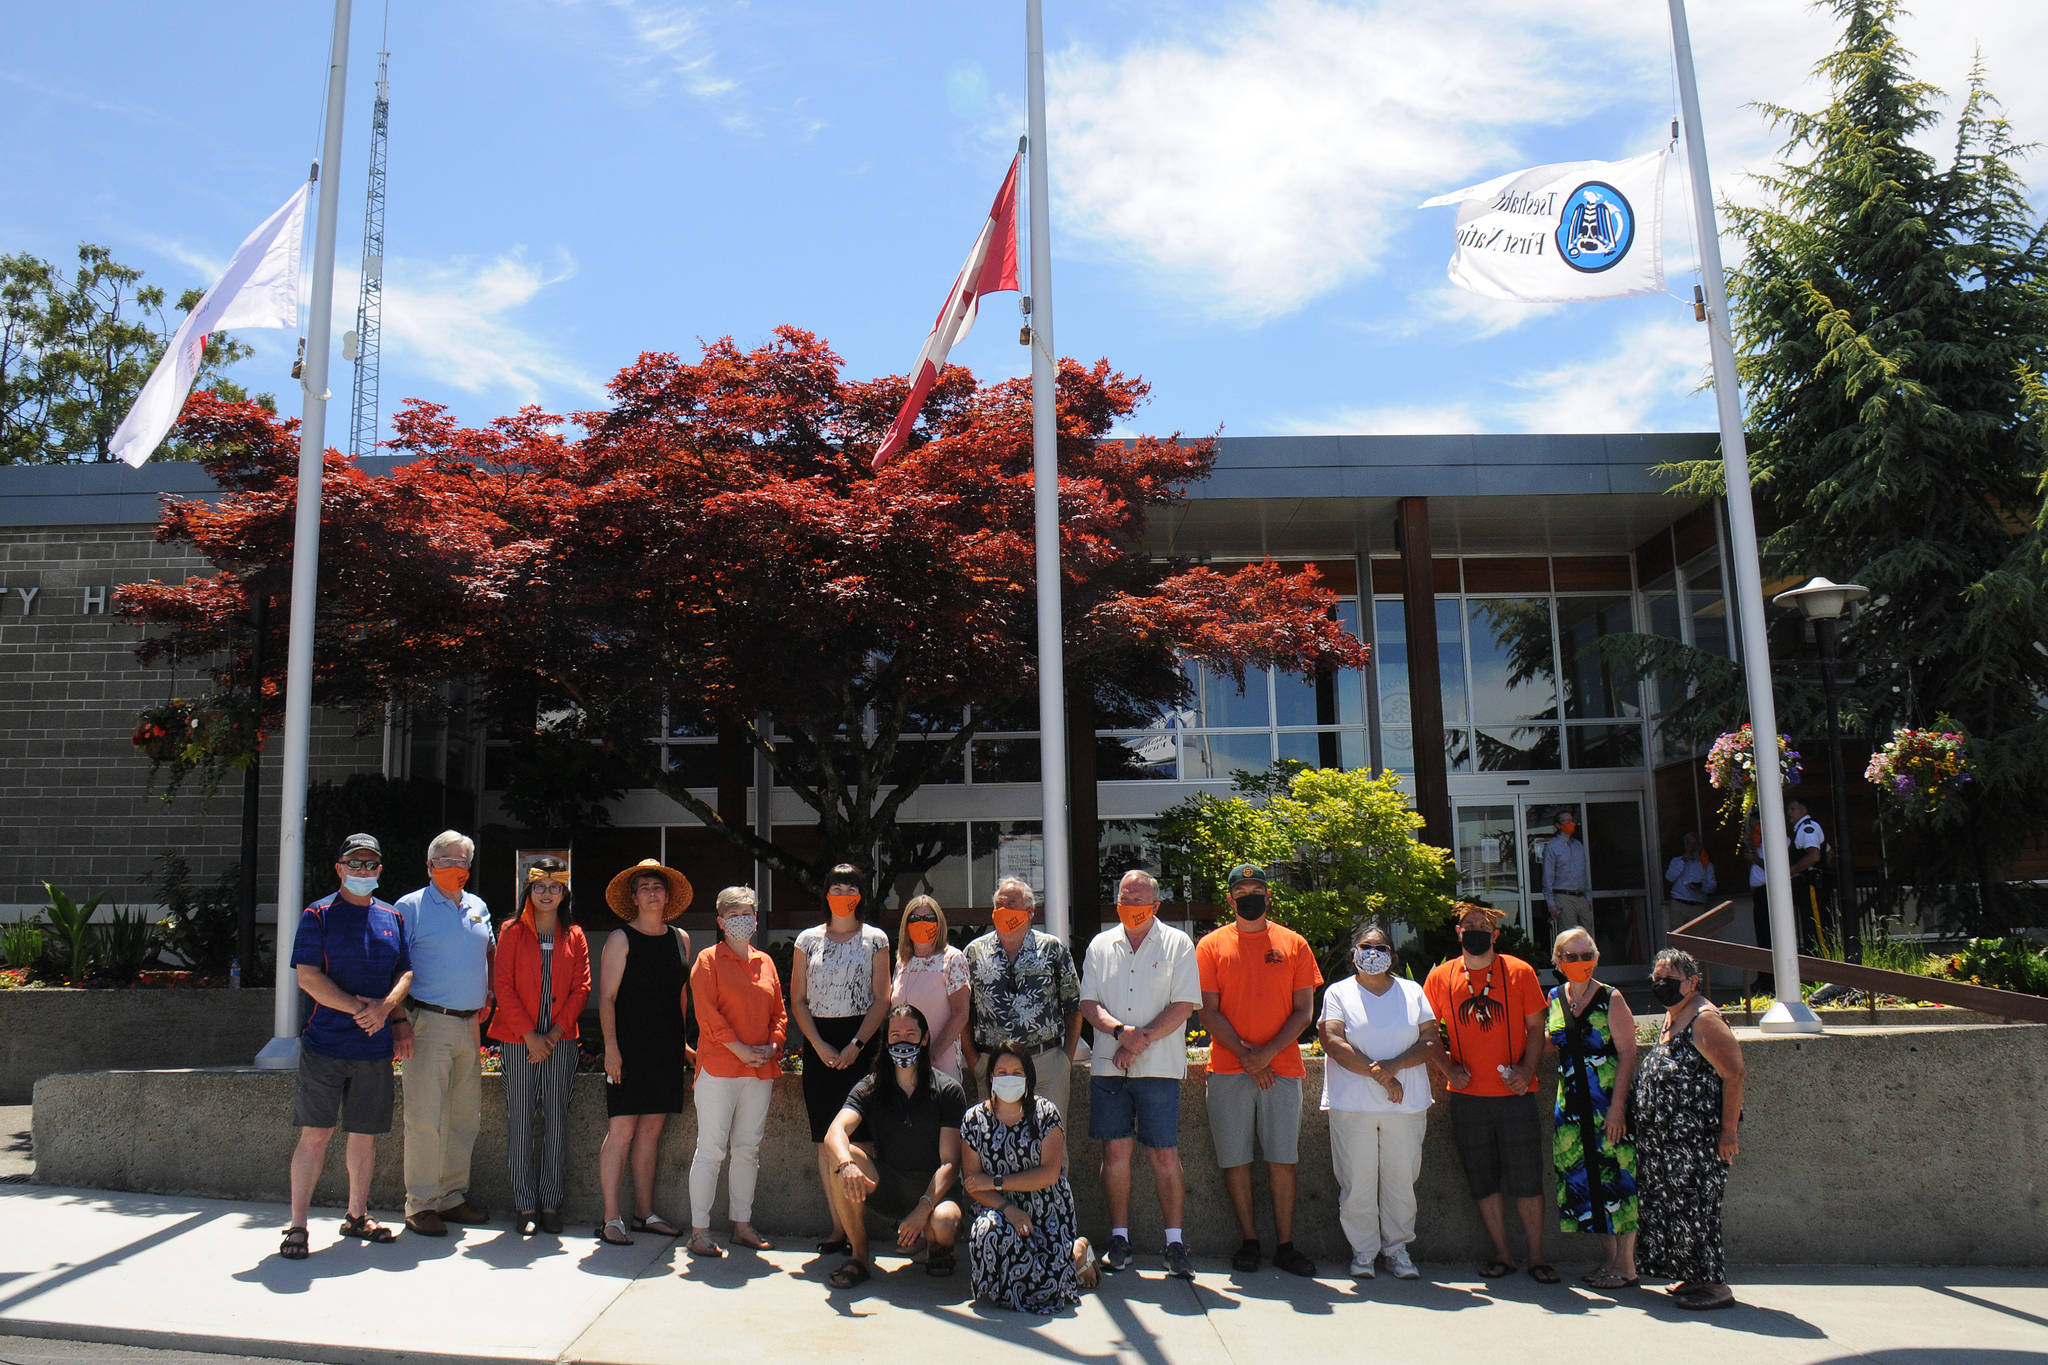 Council members, dignitaries and witnesses from the City of Port Alberni, Hupacasath First Nation and Tseshaht First Nation gather in front of city hall on June 21, 2021, National Indigenous Peoples Day, to raise the Tseshaht and Hupacasath flags. These flags will fly permanently on either side of the Canadian flag, and beside the city and provincial flags. (SUSAN QUINN/ Alberni Valley News)